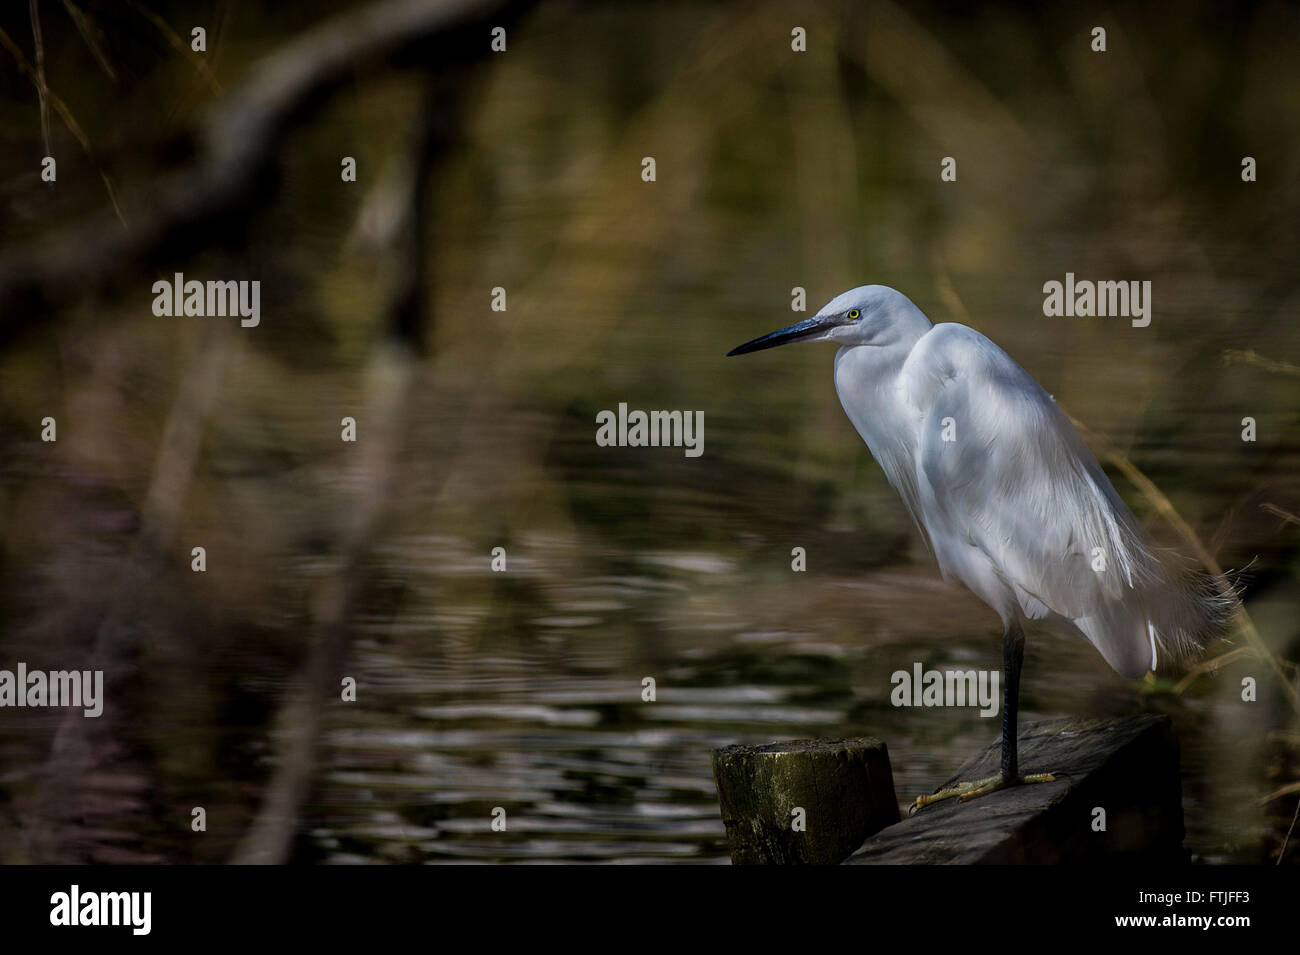 A Little Egret perched on the side of a lake in newquay, Cornwall. - Stock Image